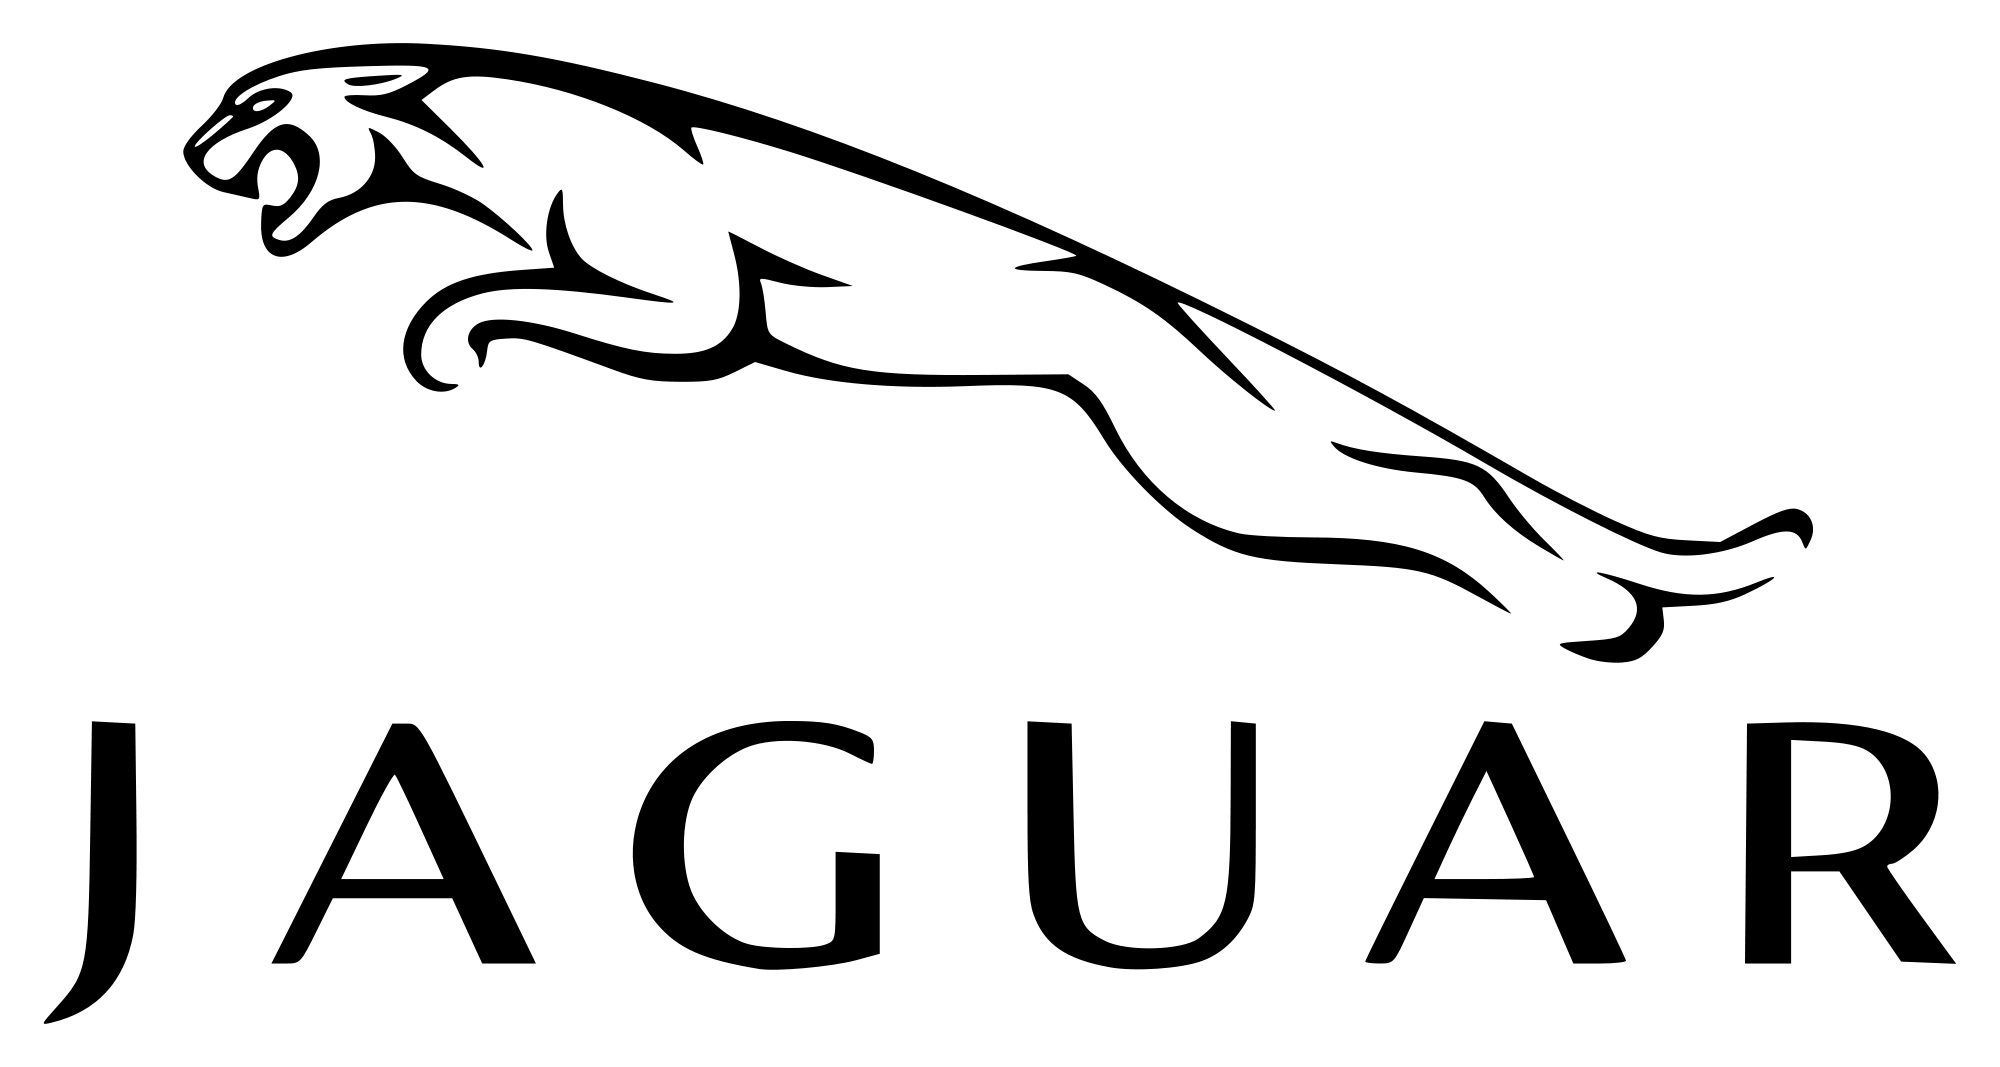 Jaguar Logo Jaguar Car Symbol Meaning And History